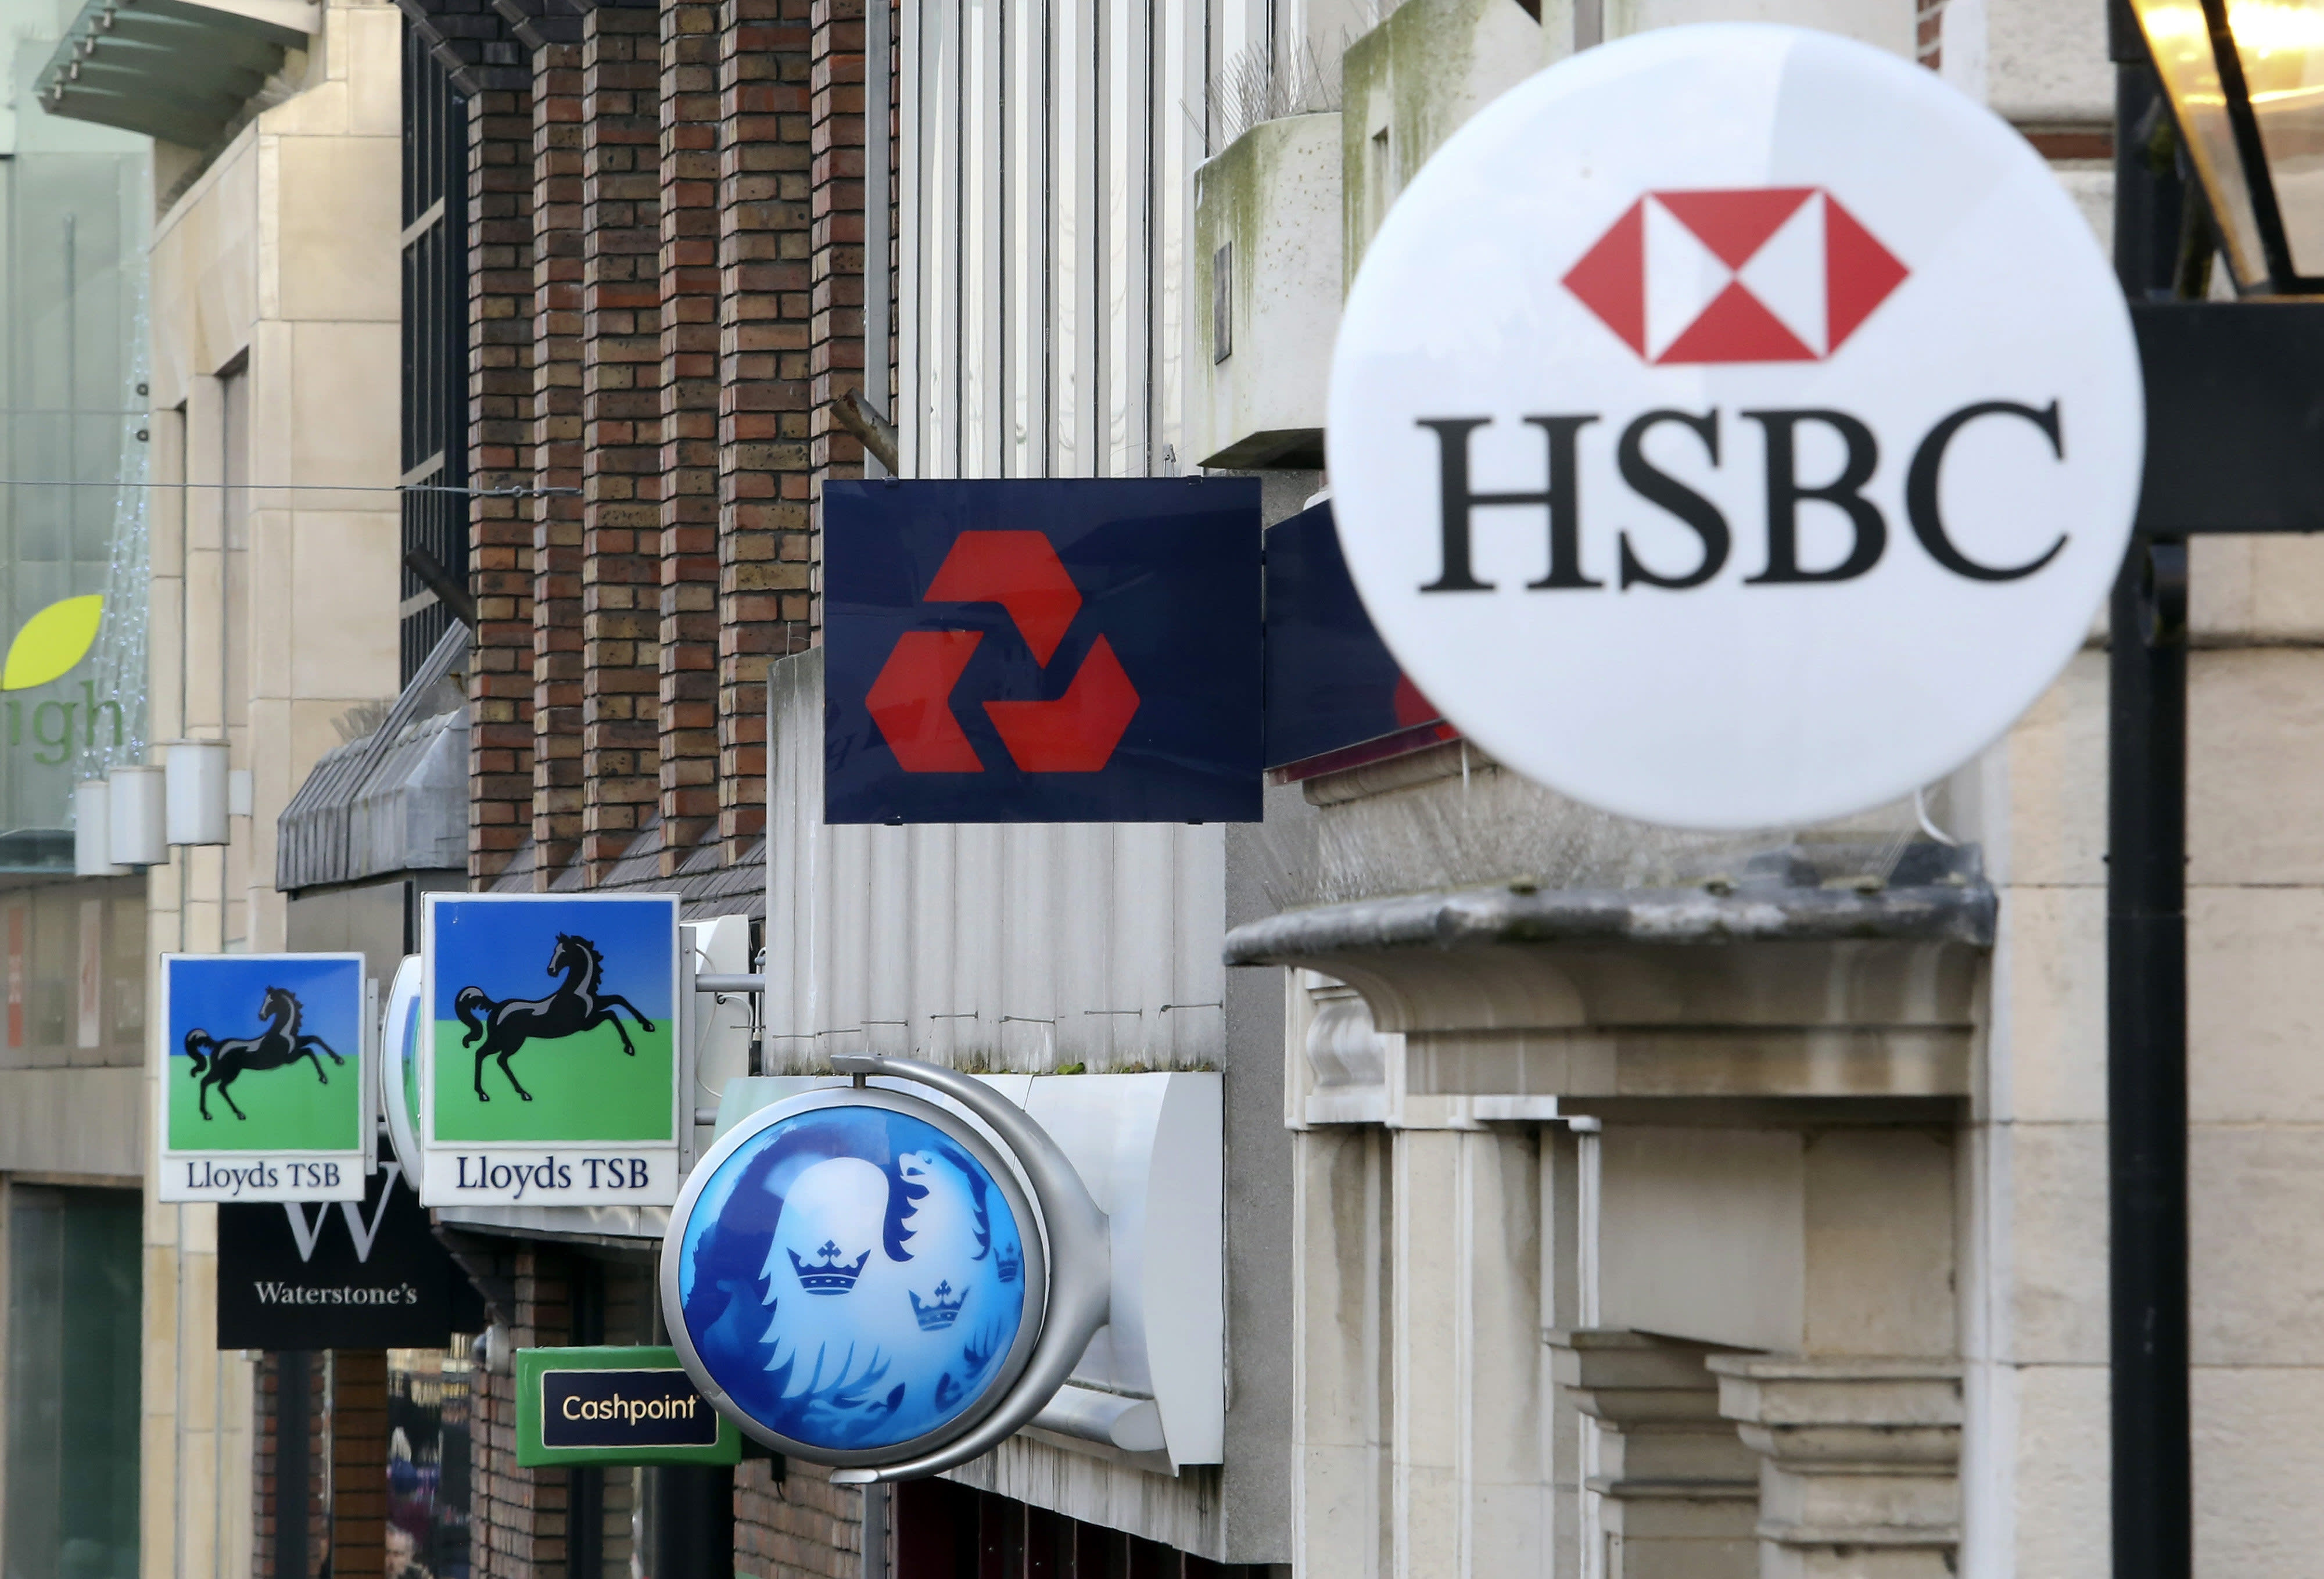 Banks launch record low fixed-rates